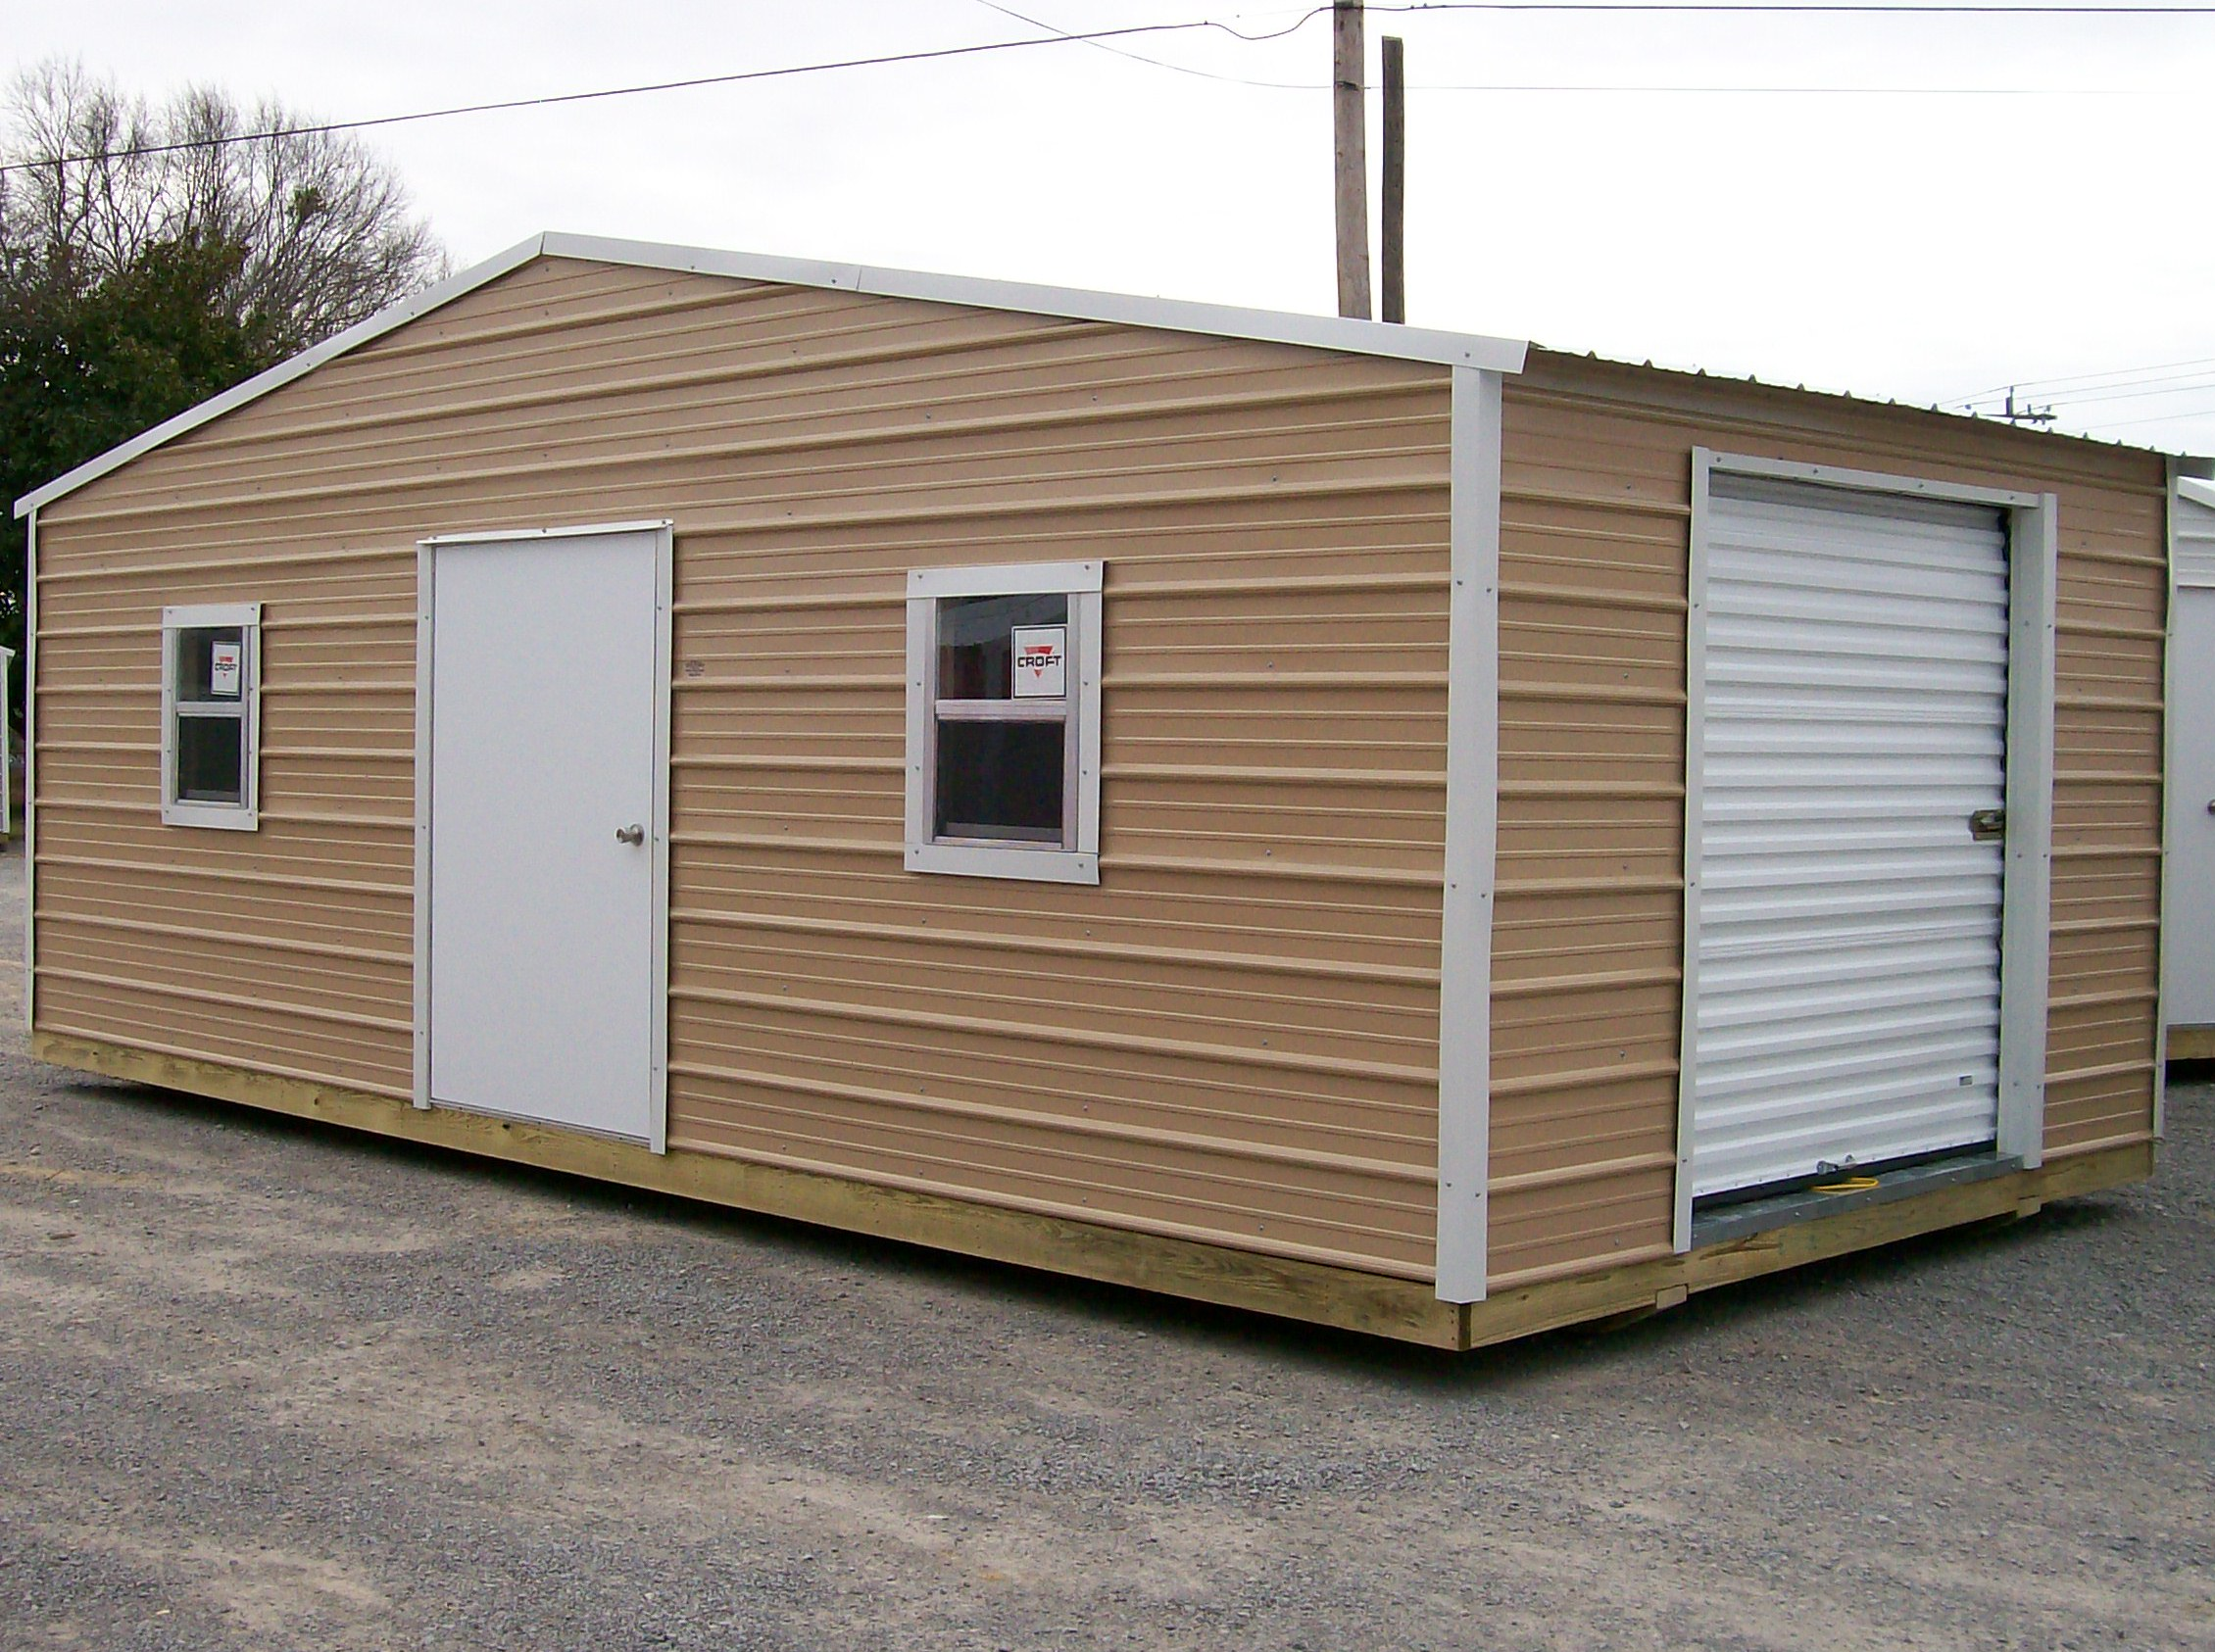 Different types of portable storage buildings carehomedecor for Barn storage shed